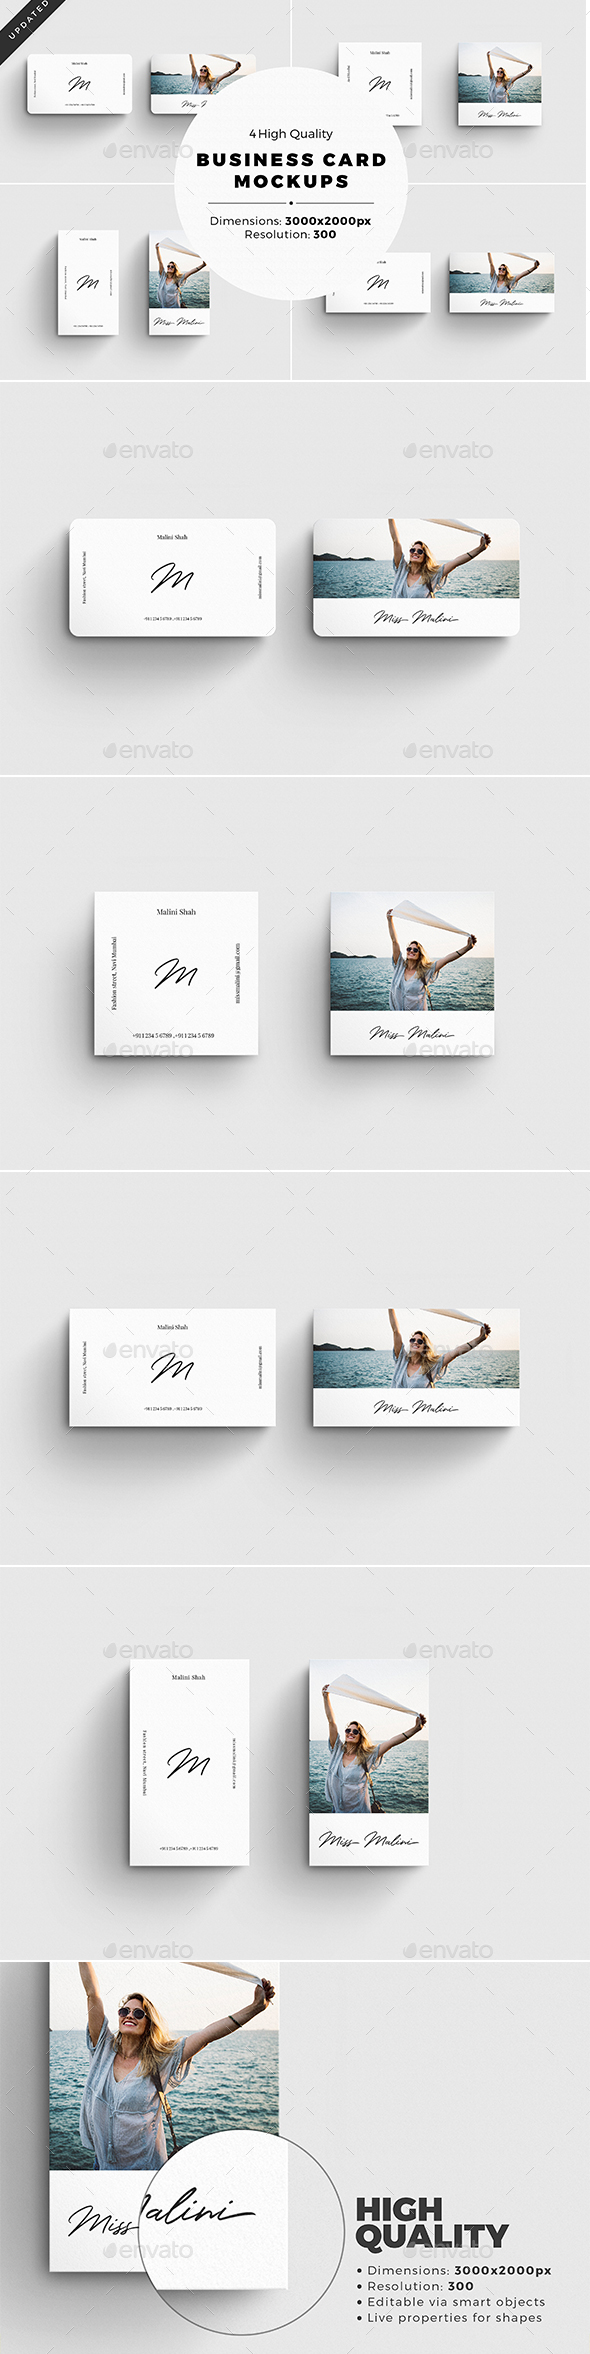 GraphicRiver Business Card MockUps [4 psd Files] 20837317